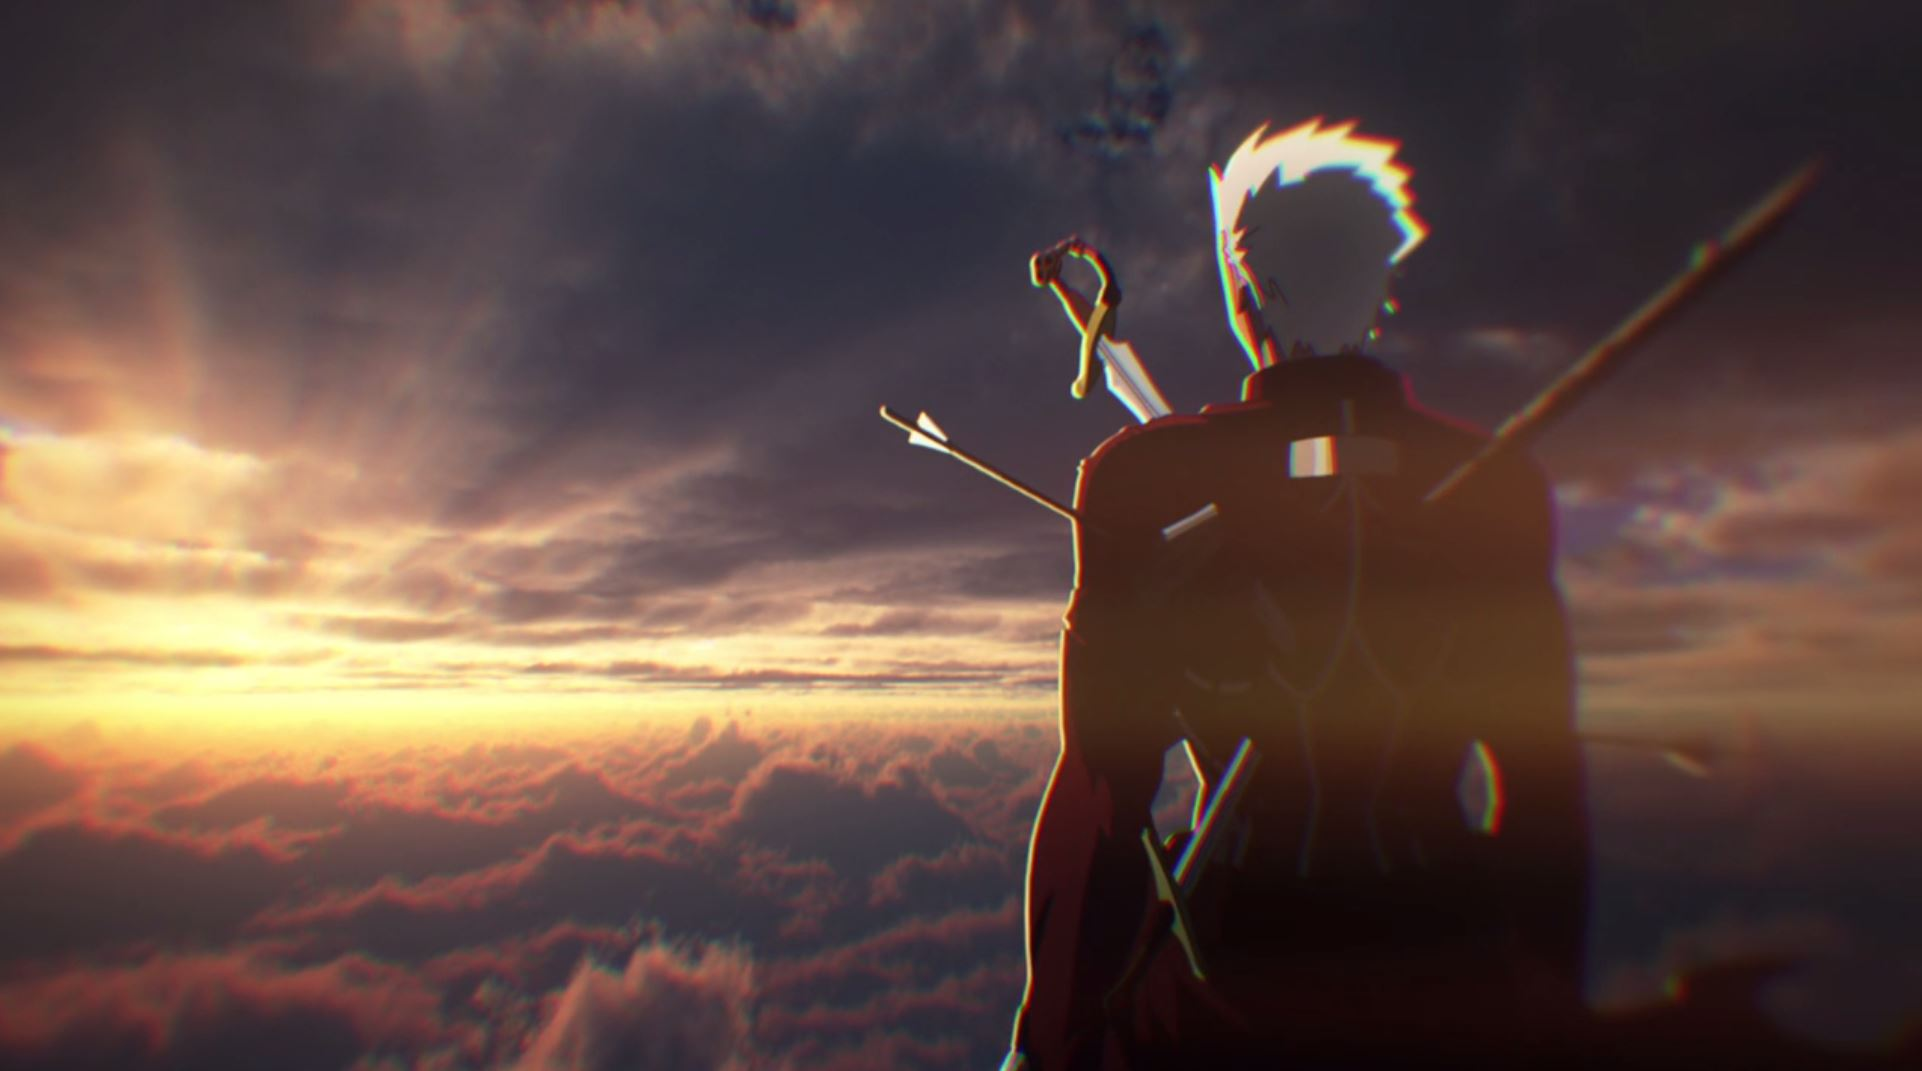 fate stay night background